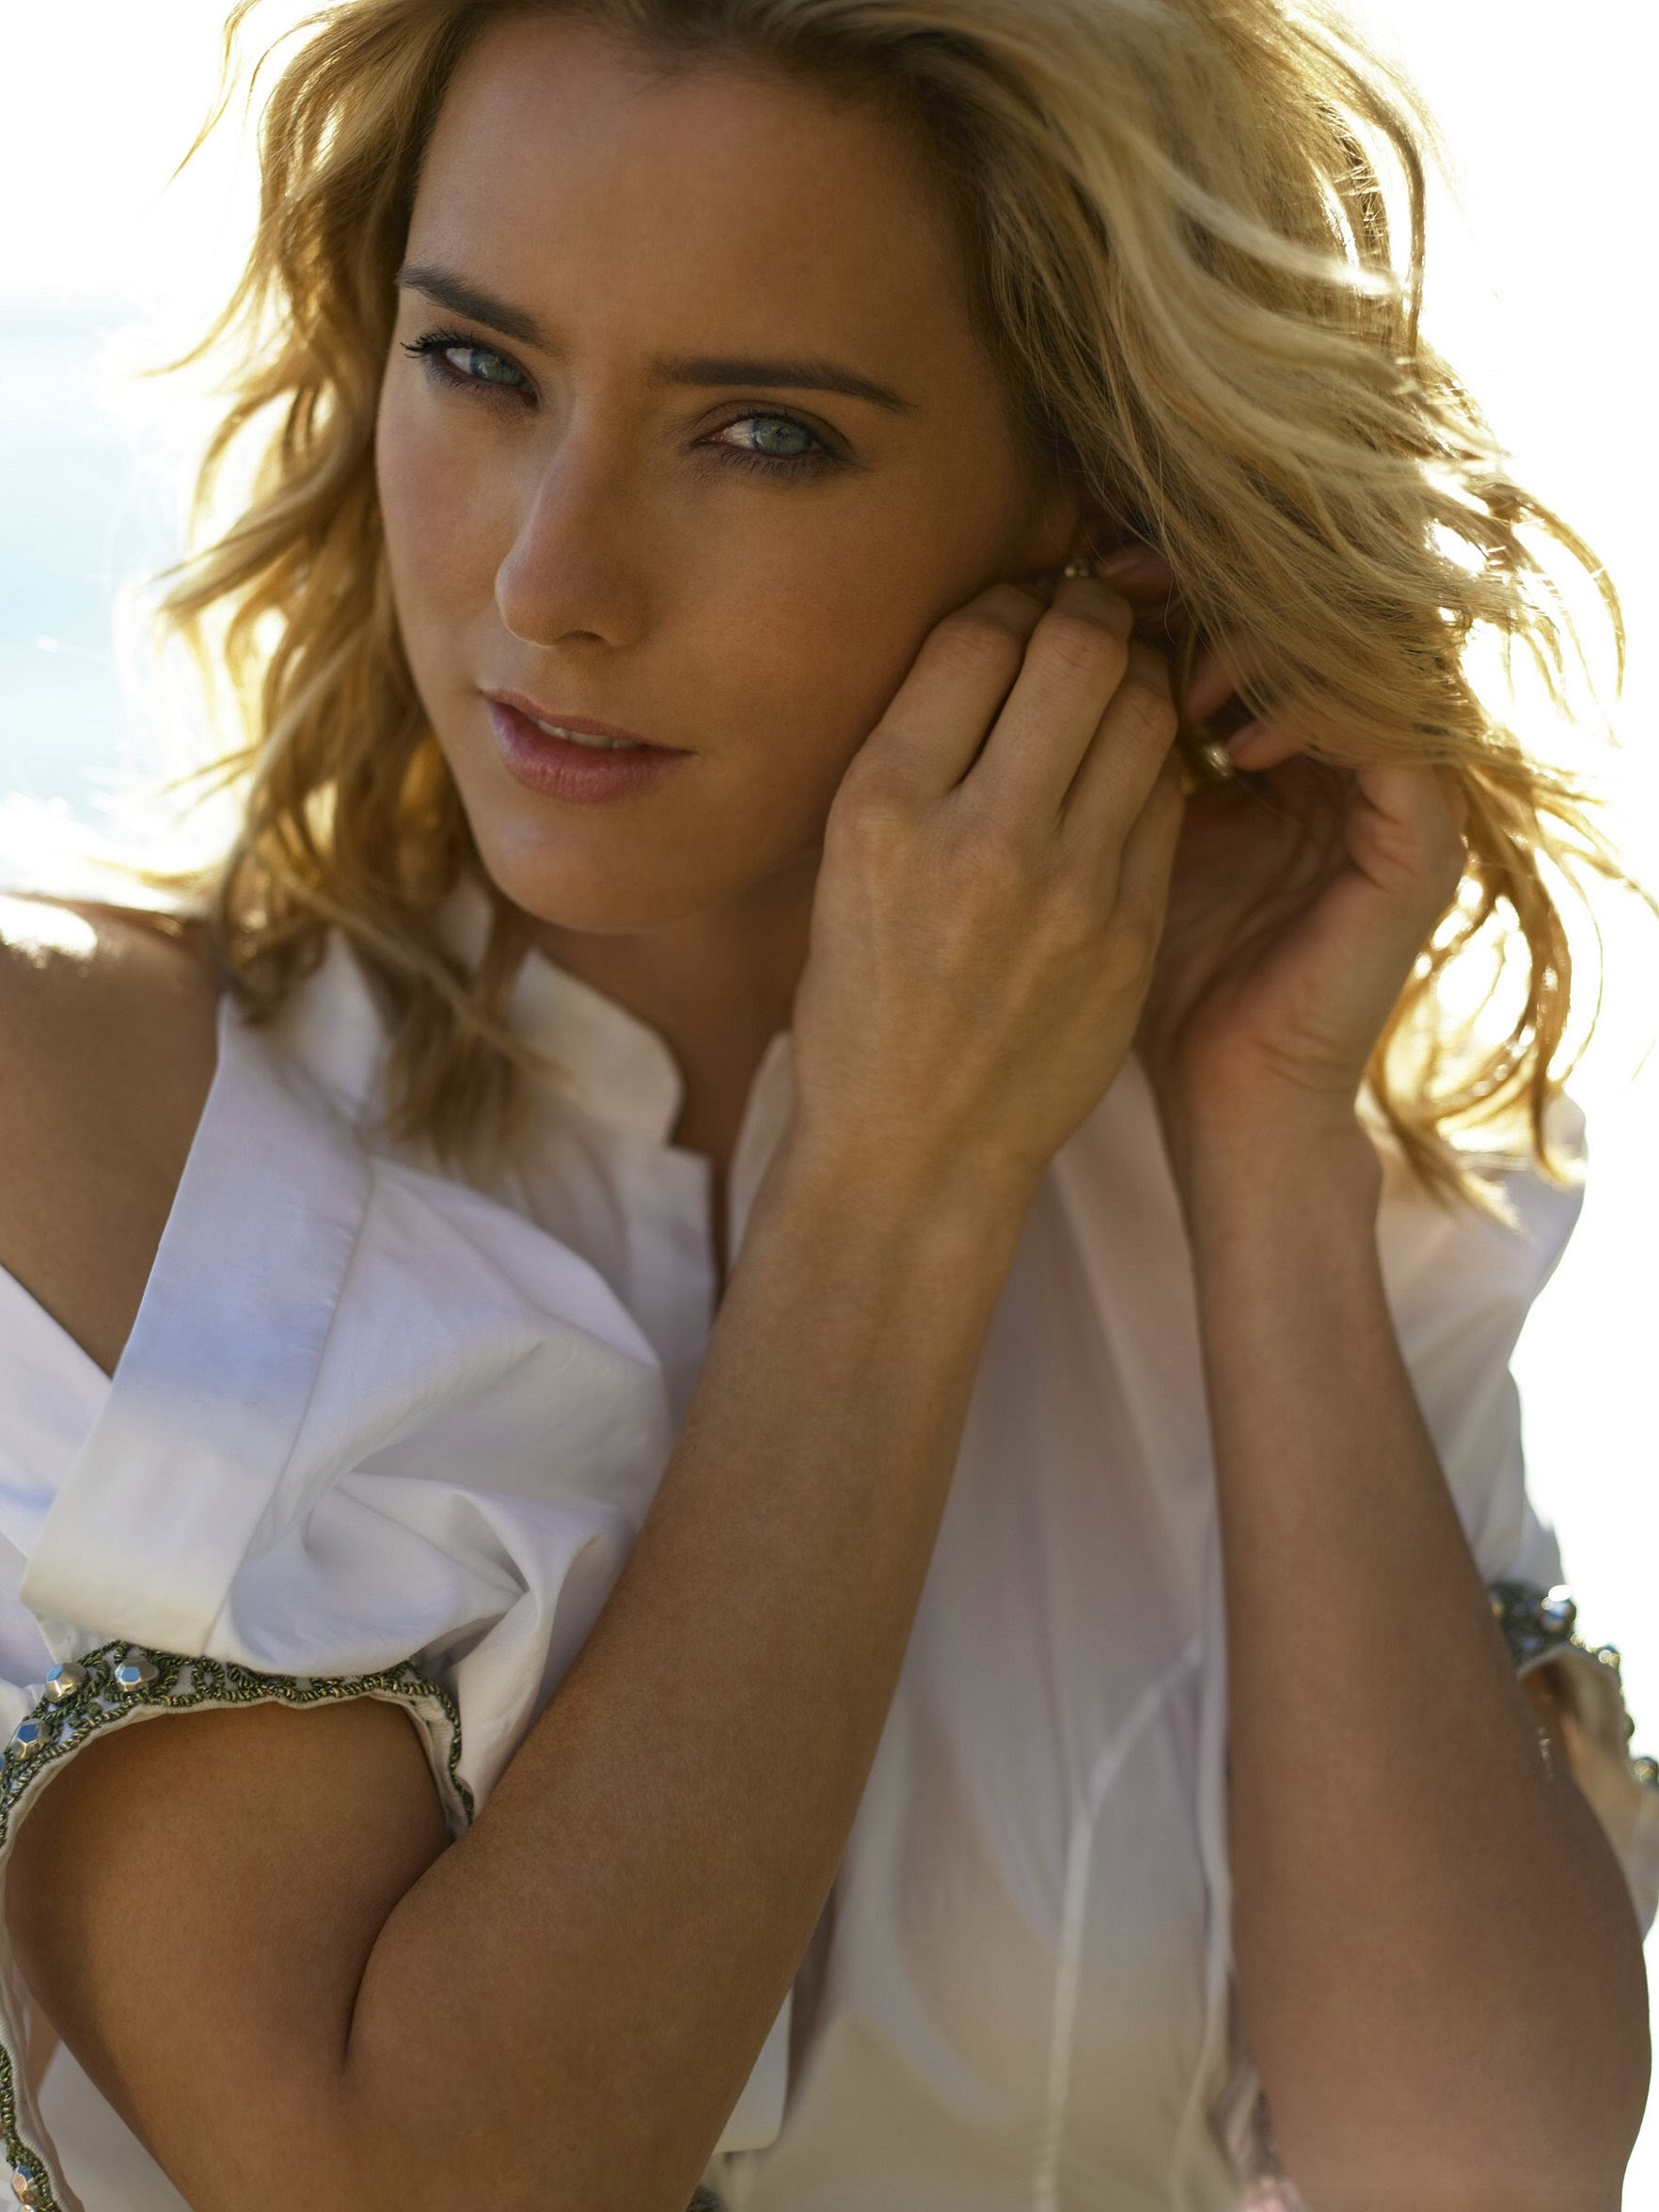 Mais, tea leoni nude